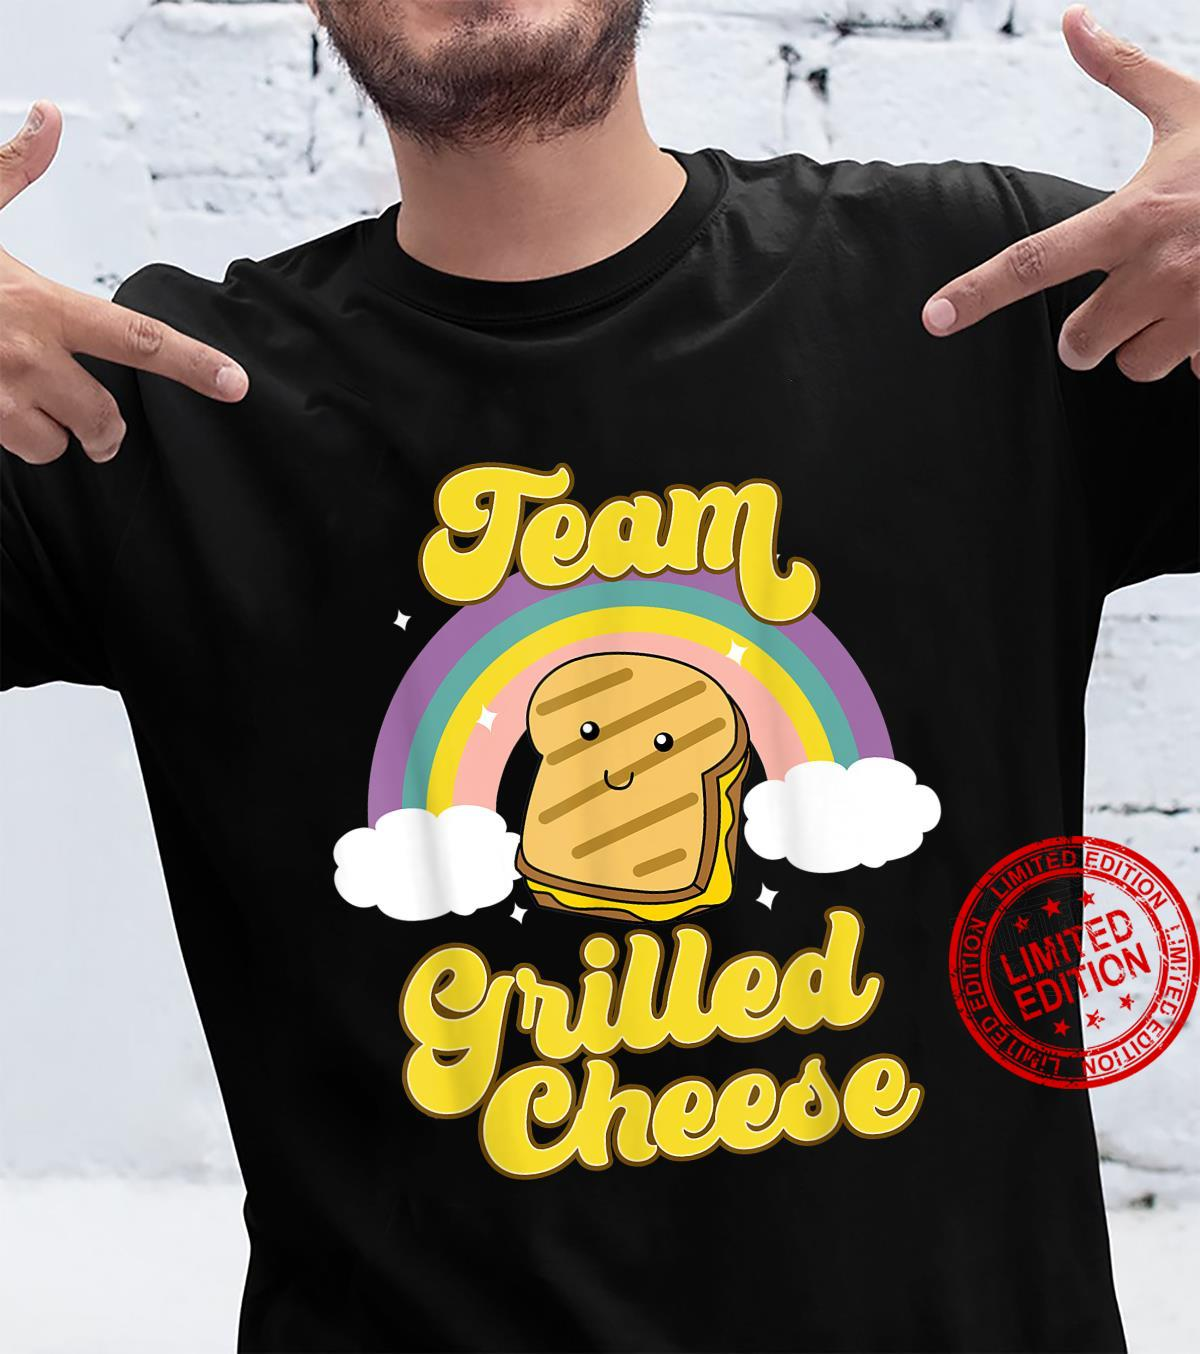 Grilled Cheese Shirt Food Team Grilled Cheese Shirt